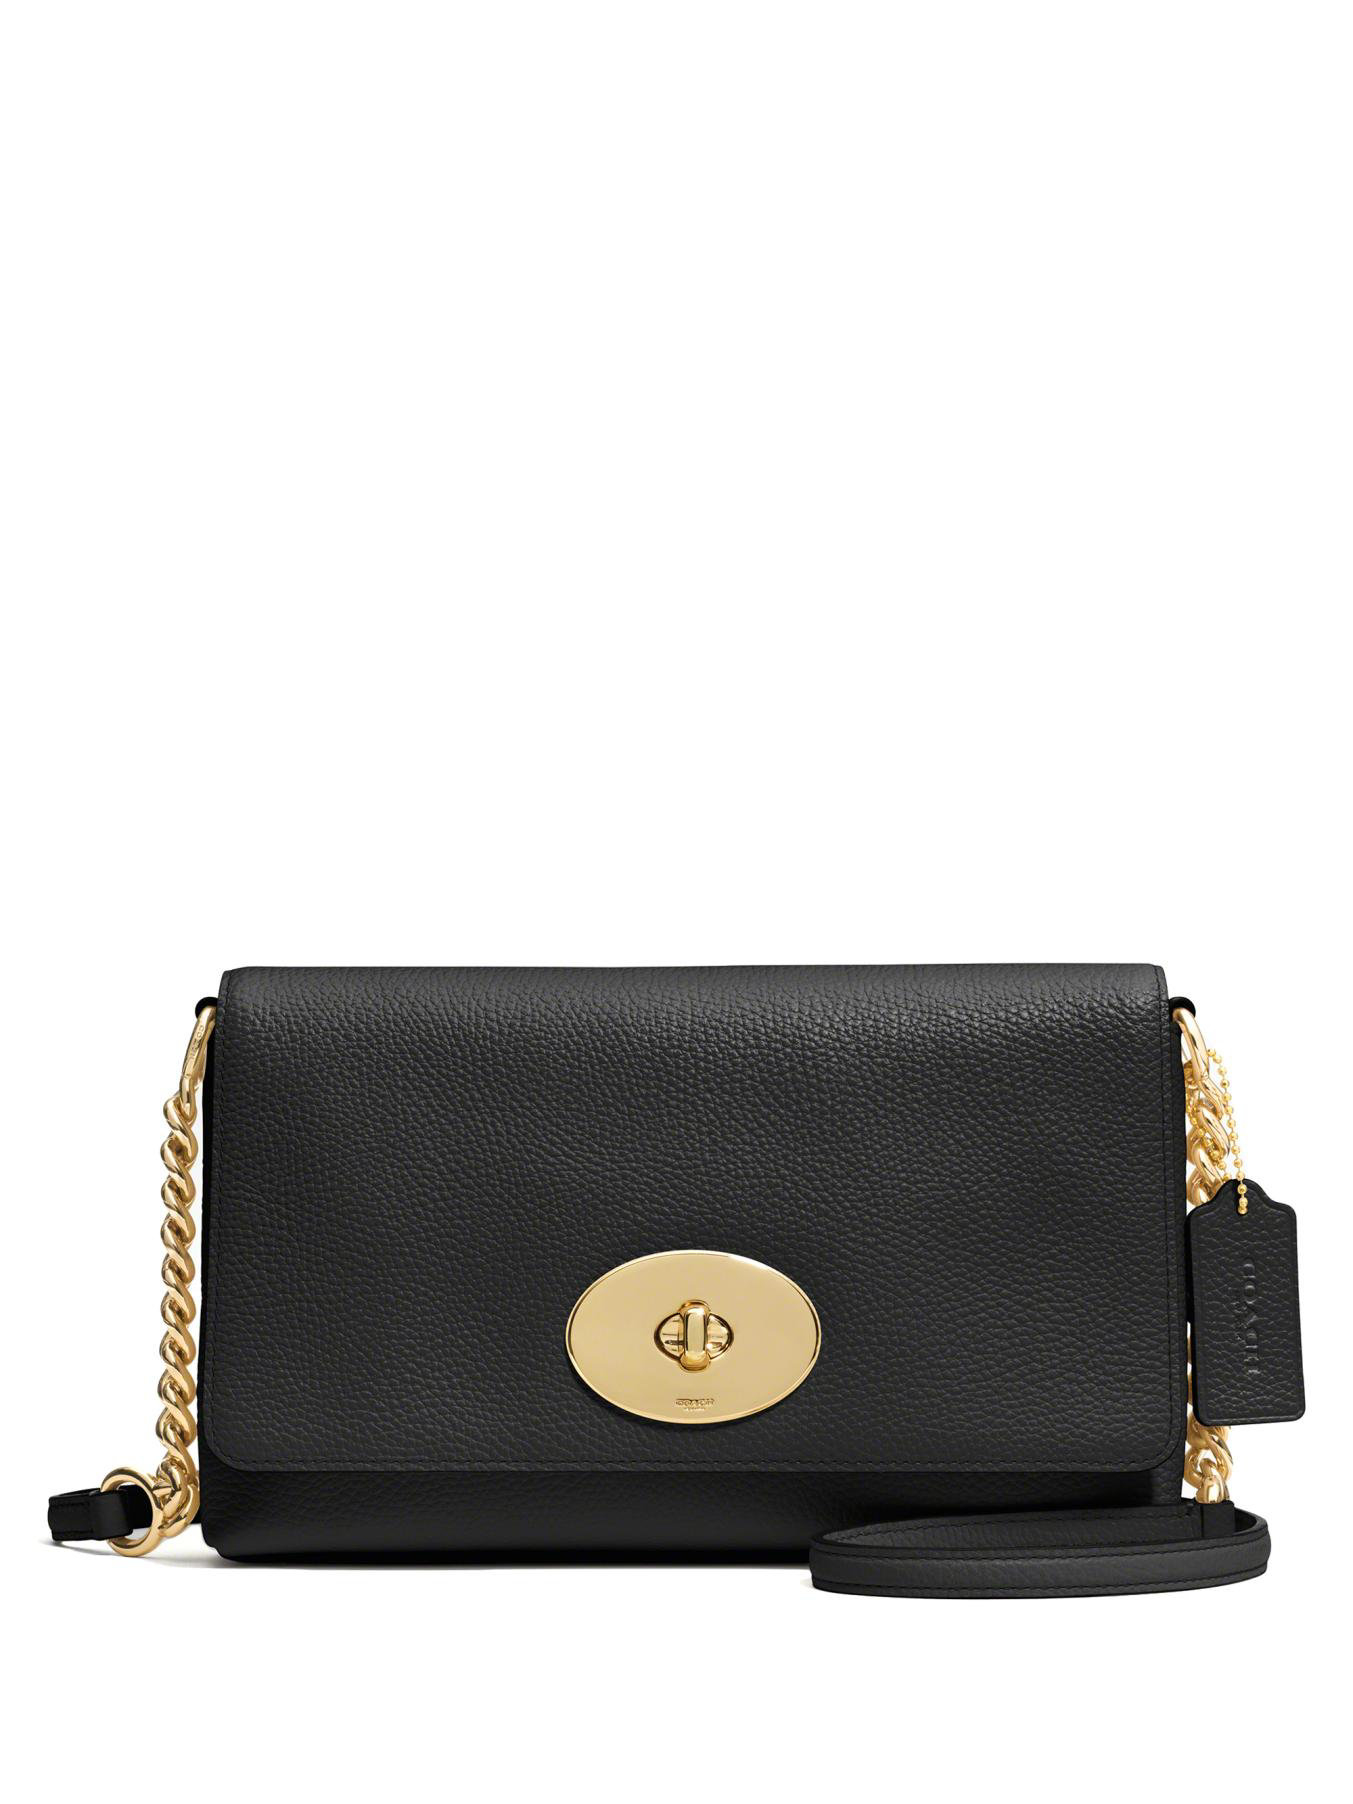 coach crosstown pebbled leather crossbody bag in black